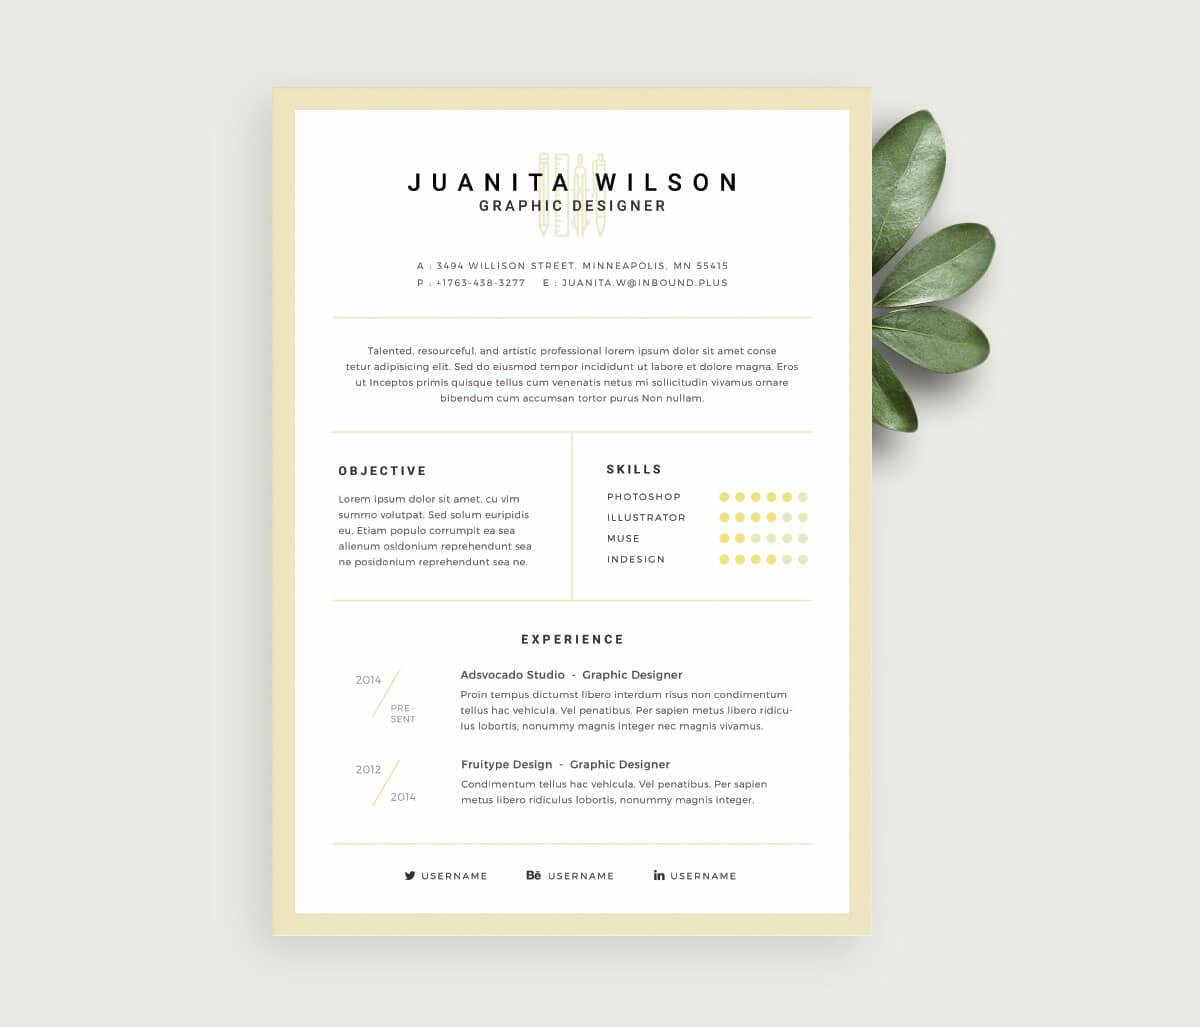 Free resume templates 17 downloadable resume templates to use thecheapjerseys Images